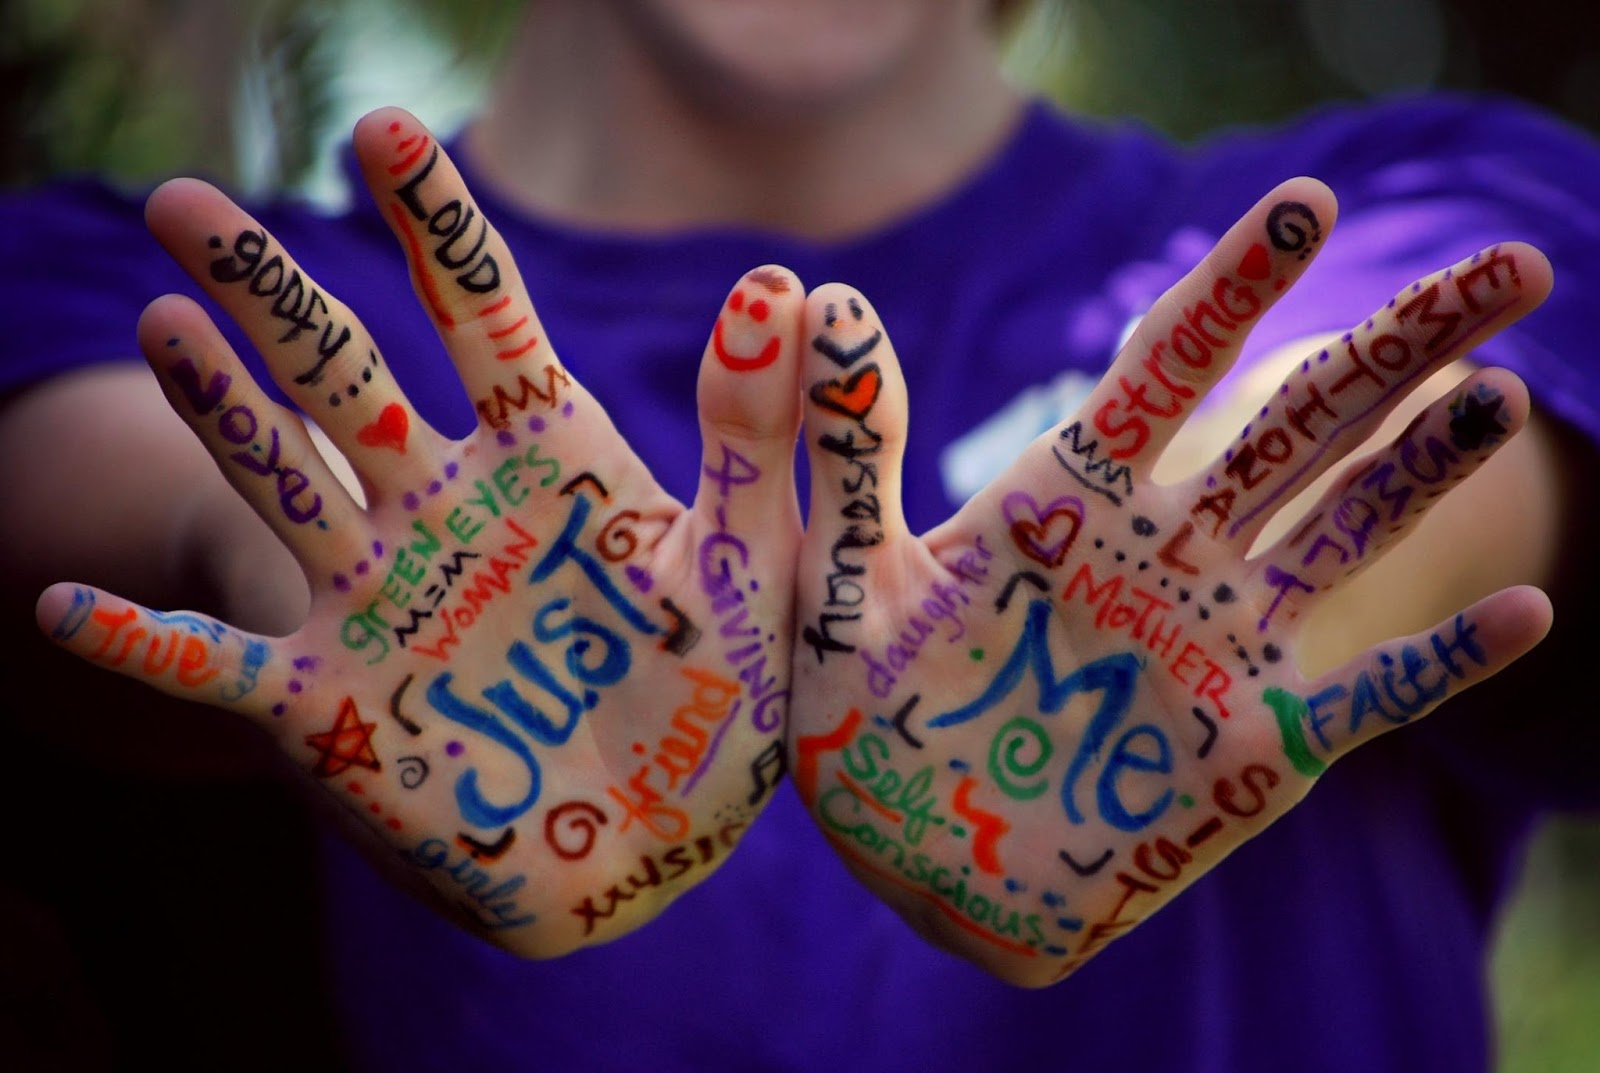 bullying in schools and the effects The effects of bullying are specific to each individual the impact may depend on the personal resources and support systems around the student bullying others.